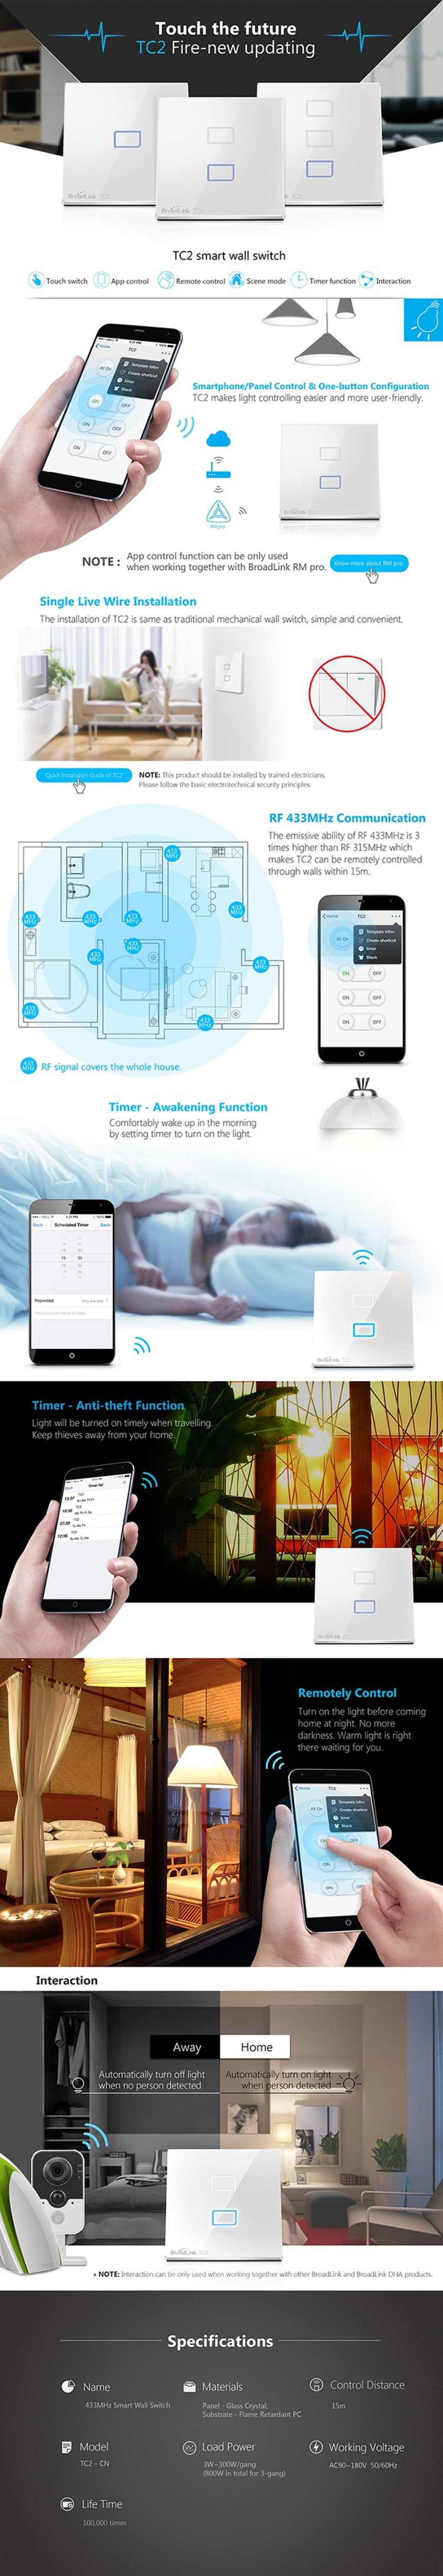 Broadlink TC2 EU Standard 3 Gang mobile Wireless Remote Control Light Switch Touch Screen by broadlink rm2,Smart Home Automation